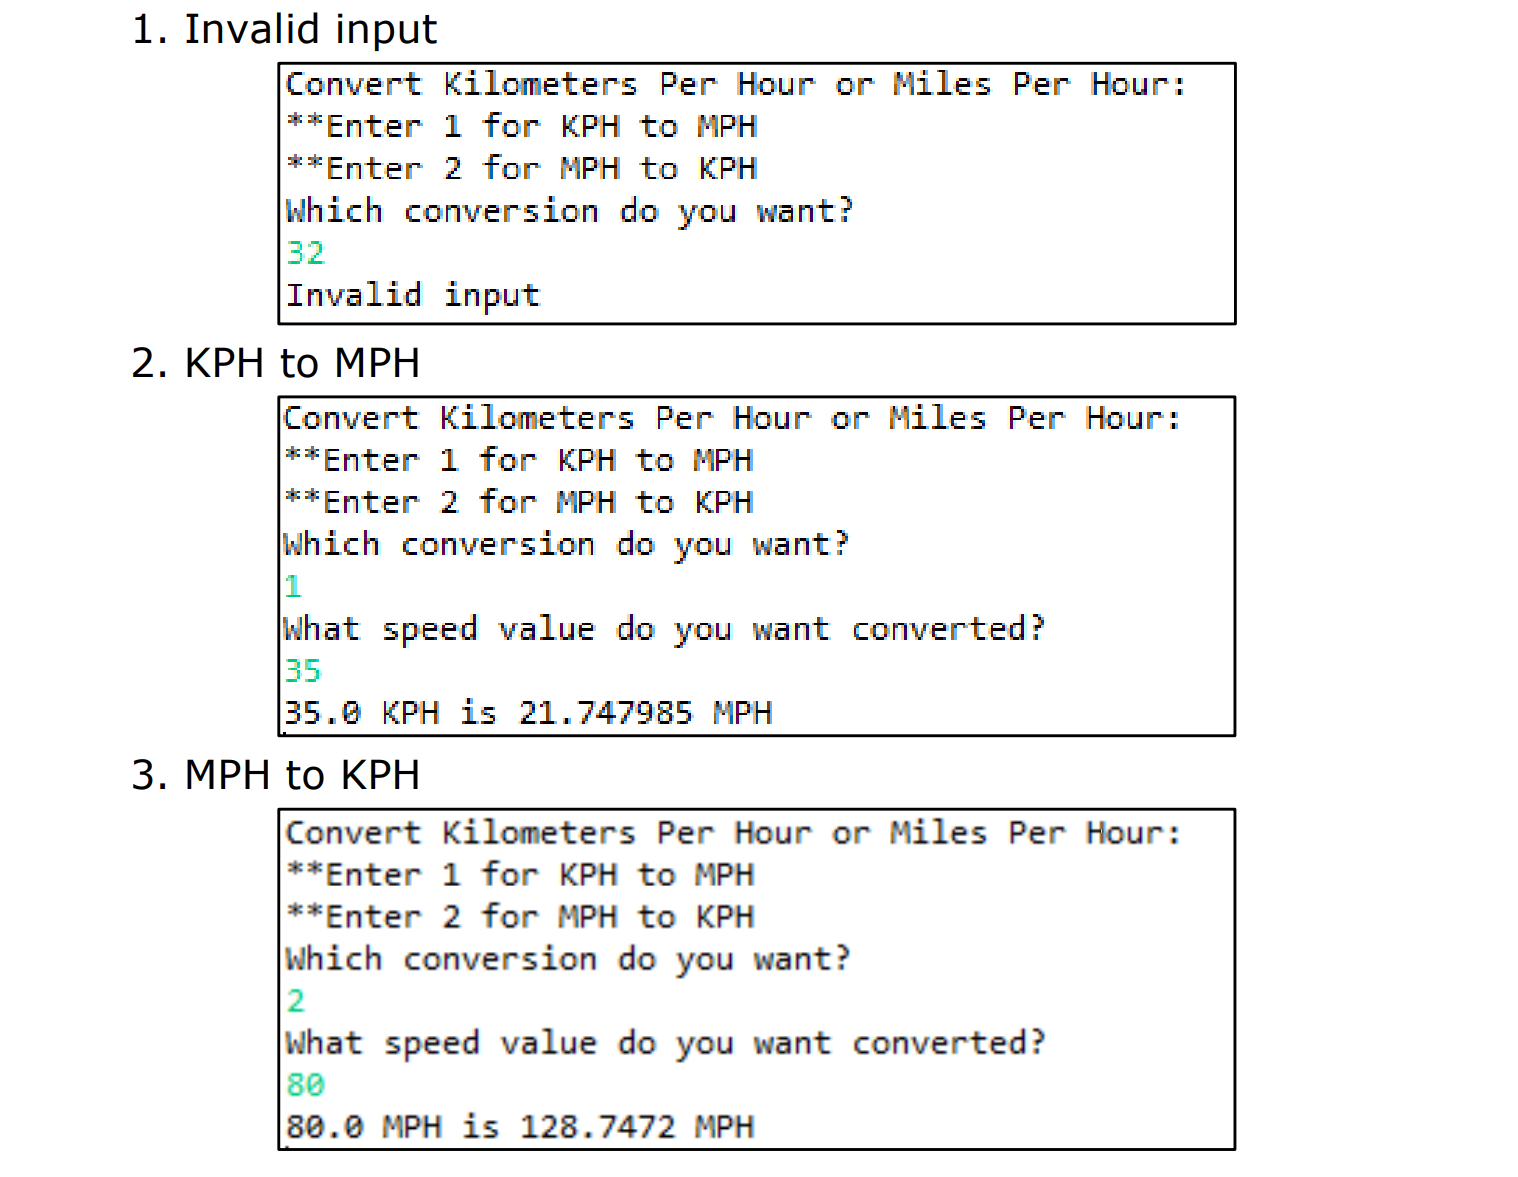 1. Invalid input Convert kilometers Per Hour or Miles Per Hour **Enter 1 for KPH to MPH **Enter 2 for MPH to KPH hich convers ntr sion do you wa Invalid input 2. KPH to MPHH Convert Kilometers Per Hour or MilesPer Hour **Enter 1 for KPH to MPH **Enter 2 for MPH to KPH Which conversion do you want? peed value do you wan 35 35.0 KPH is 21.747985MPH 3. MPH to KPHH Convert Kilometers Per Hour or Miles Per Hour: **Enter 1 for KPH to MPH *Enter 2 for MPH to KPH Which conversion do you want? 2 What speed value do you want converted? 80 80.0 MPH is 128.7472 MPH